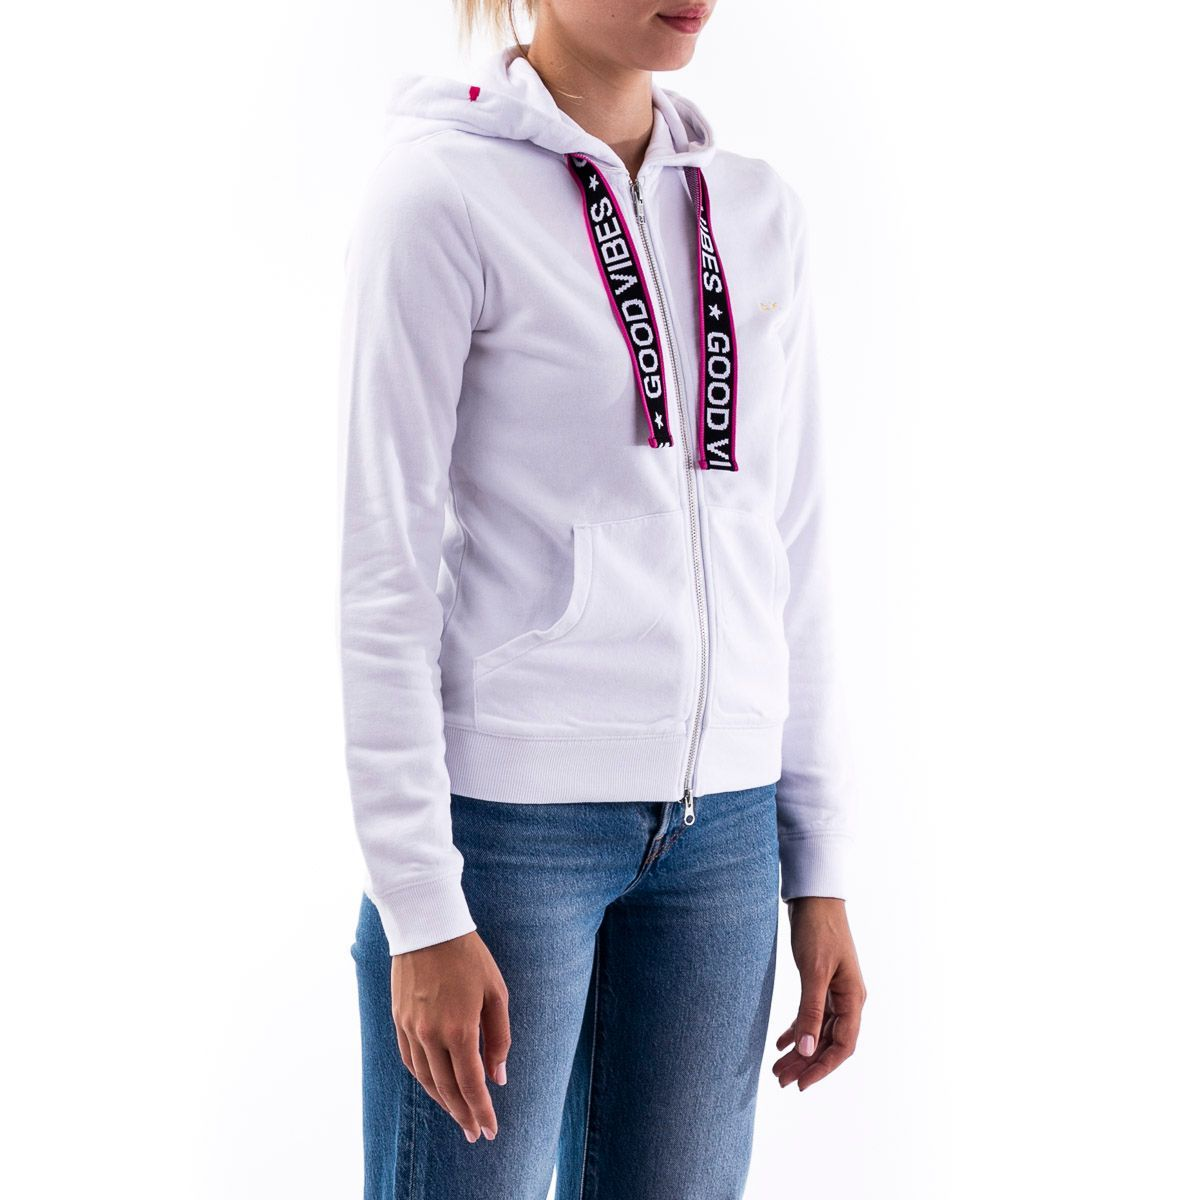 SUN 68 WOMEN'S F3020201 WHITE COTTON SWEATSHIRT